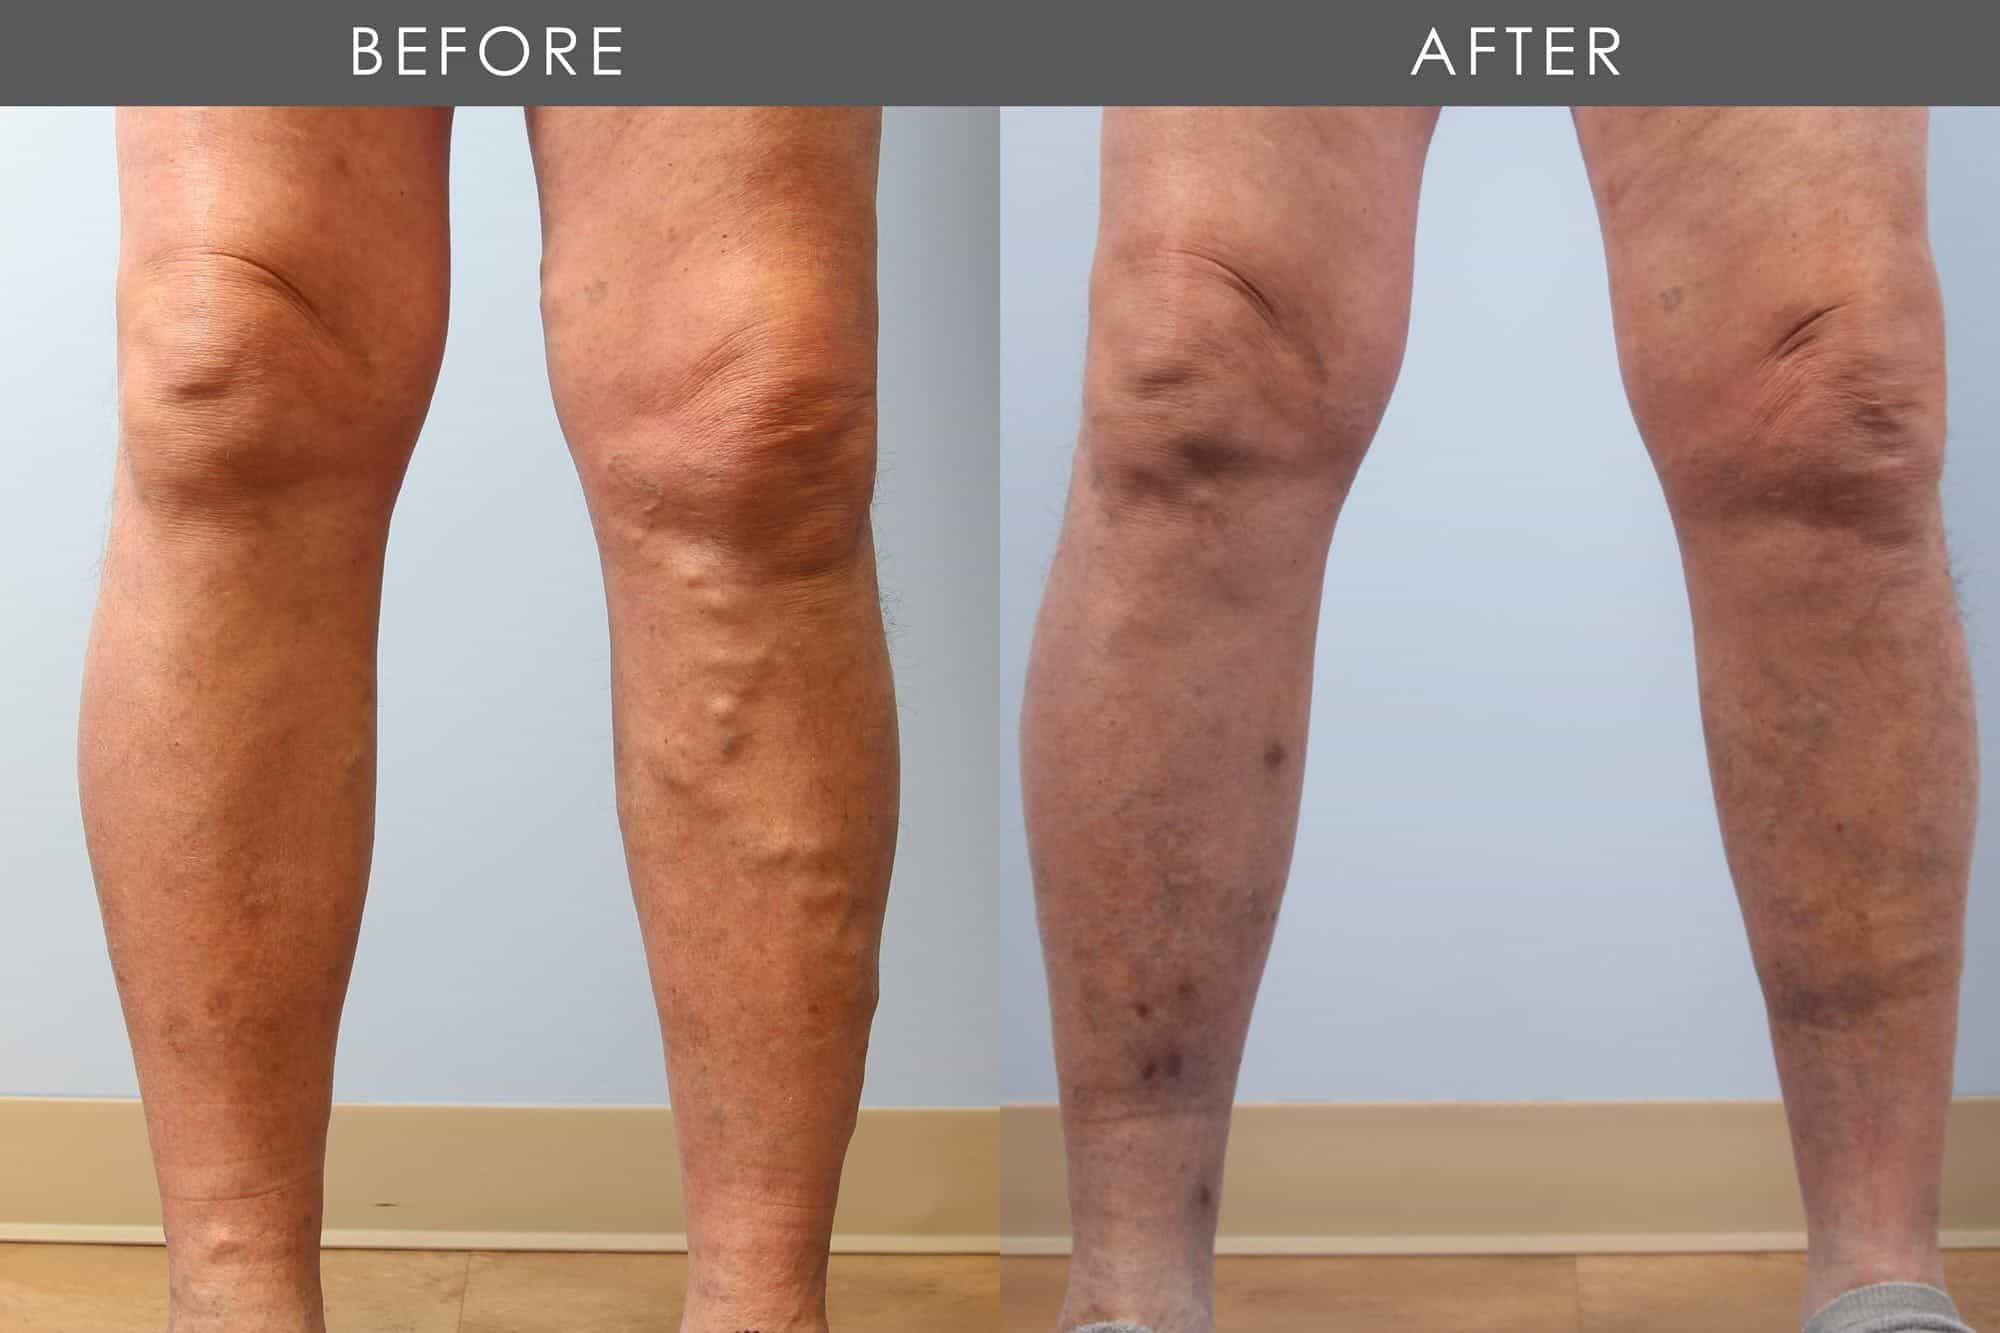 Before and After Varicose Vein Treatment treatment #3